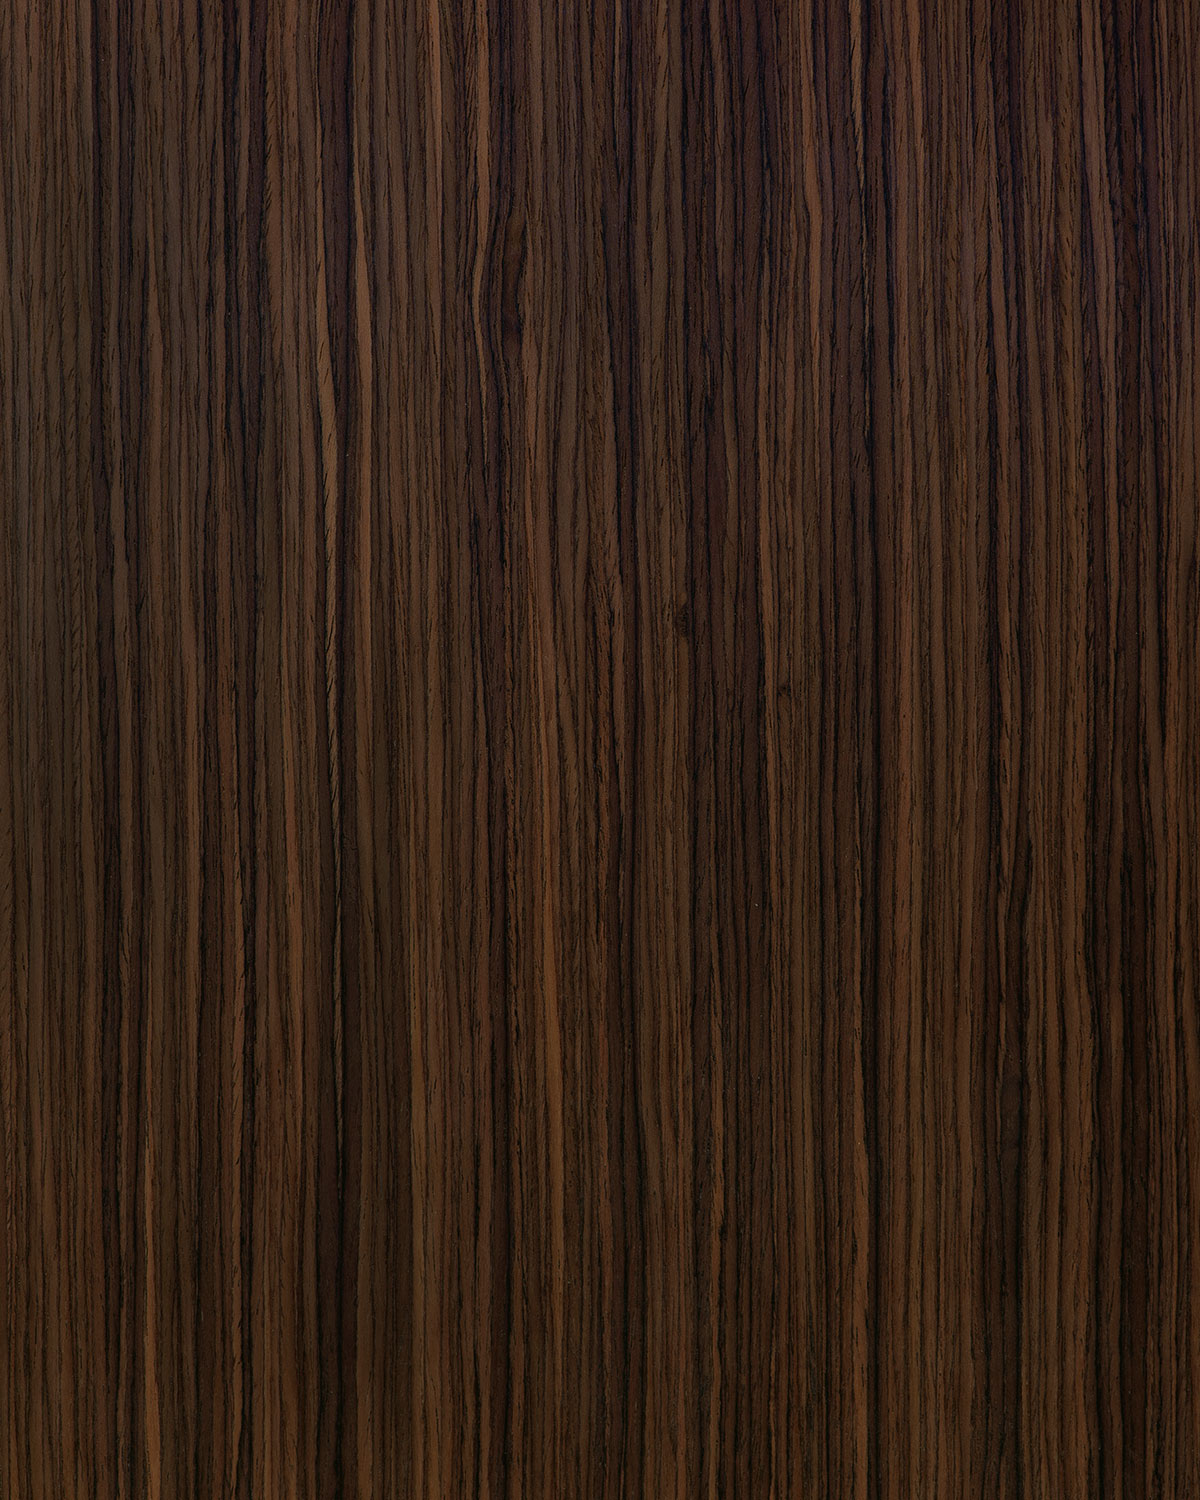 Recon Indian Rosewood Quarter Cut #732002